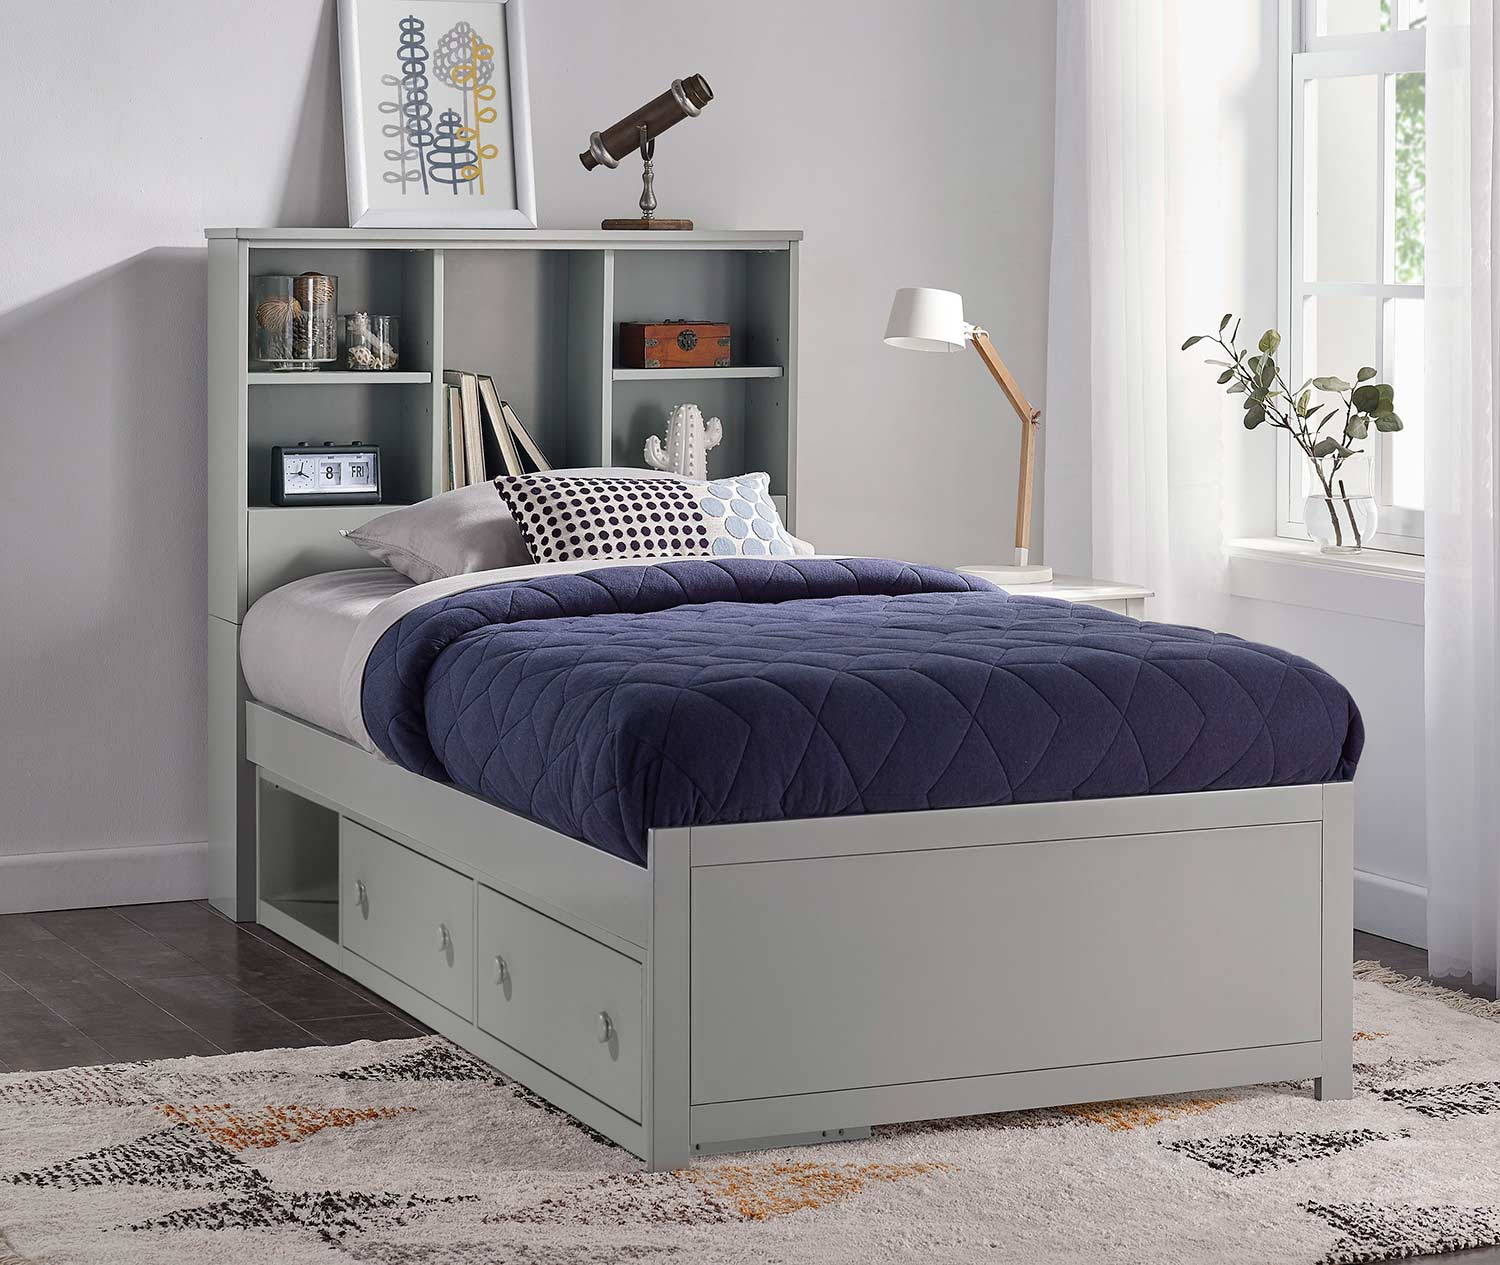 Hillsdale Caspian Twin Bookcase Bed with Storage Unit - Gray